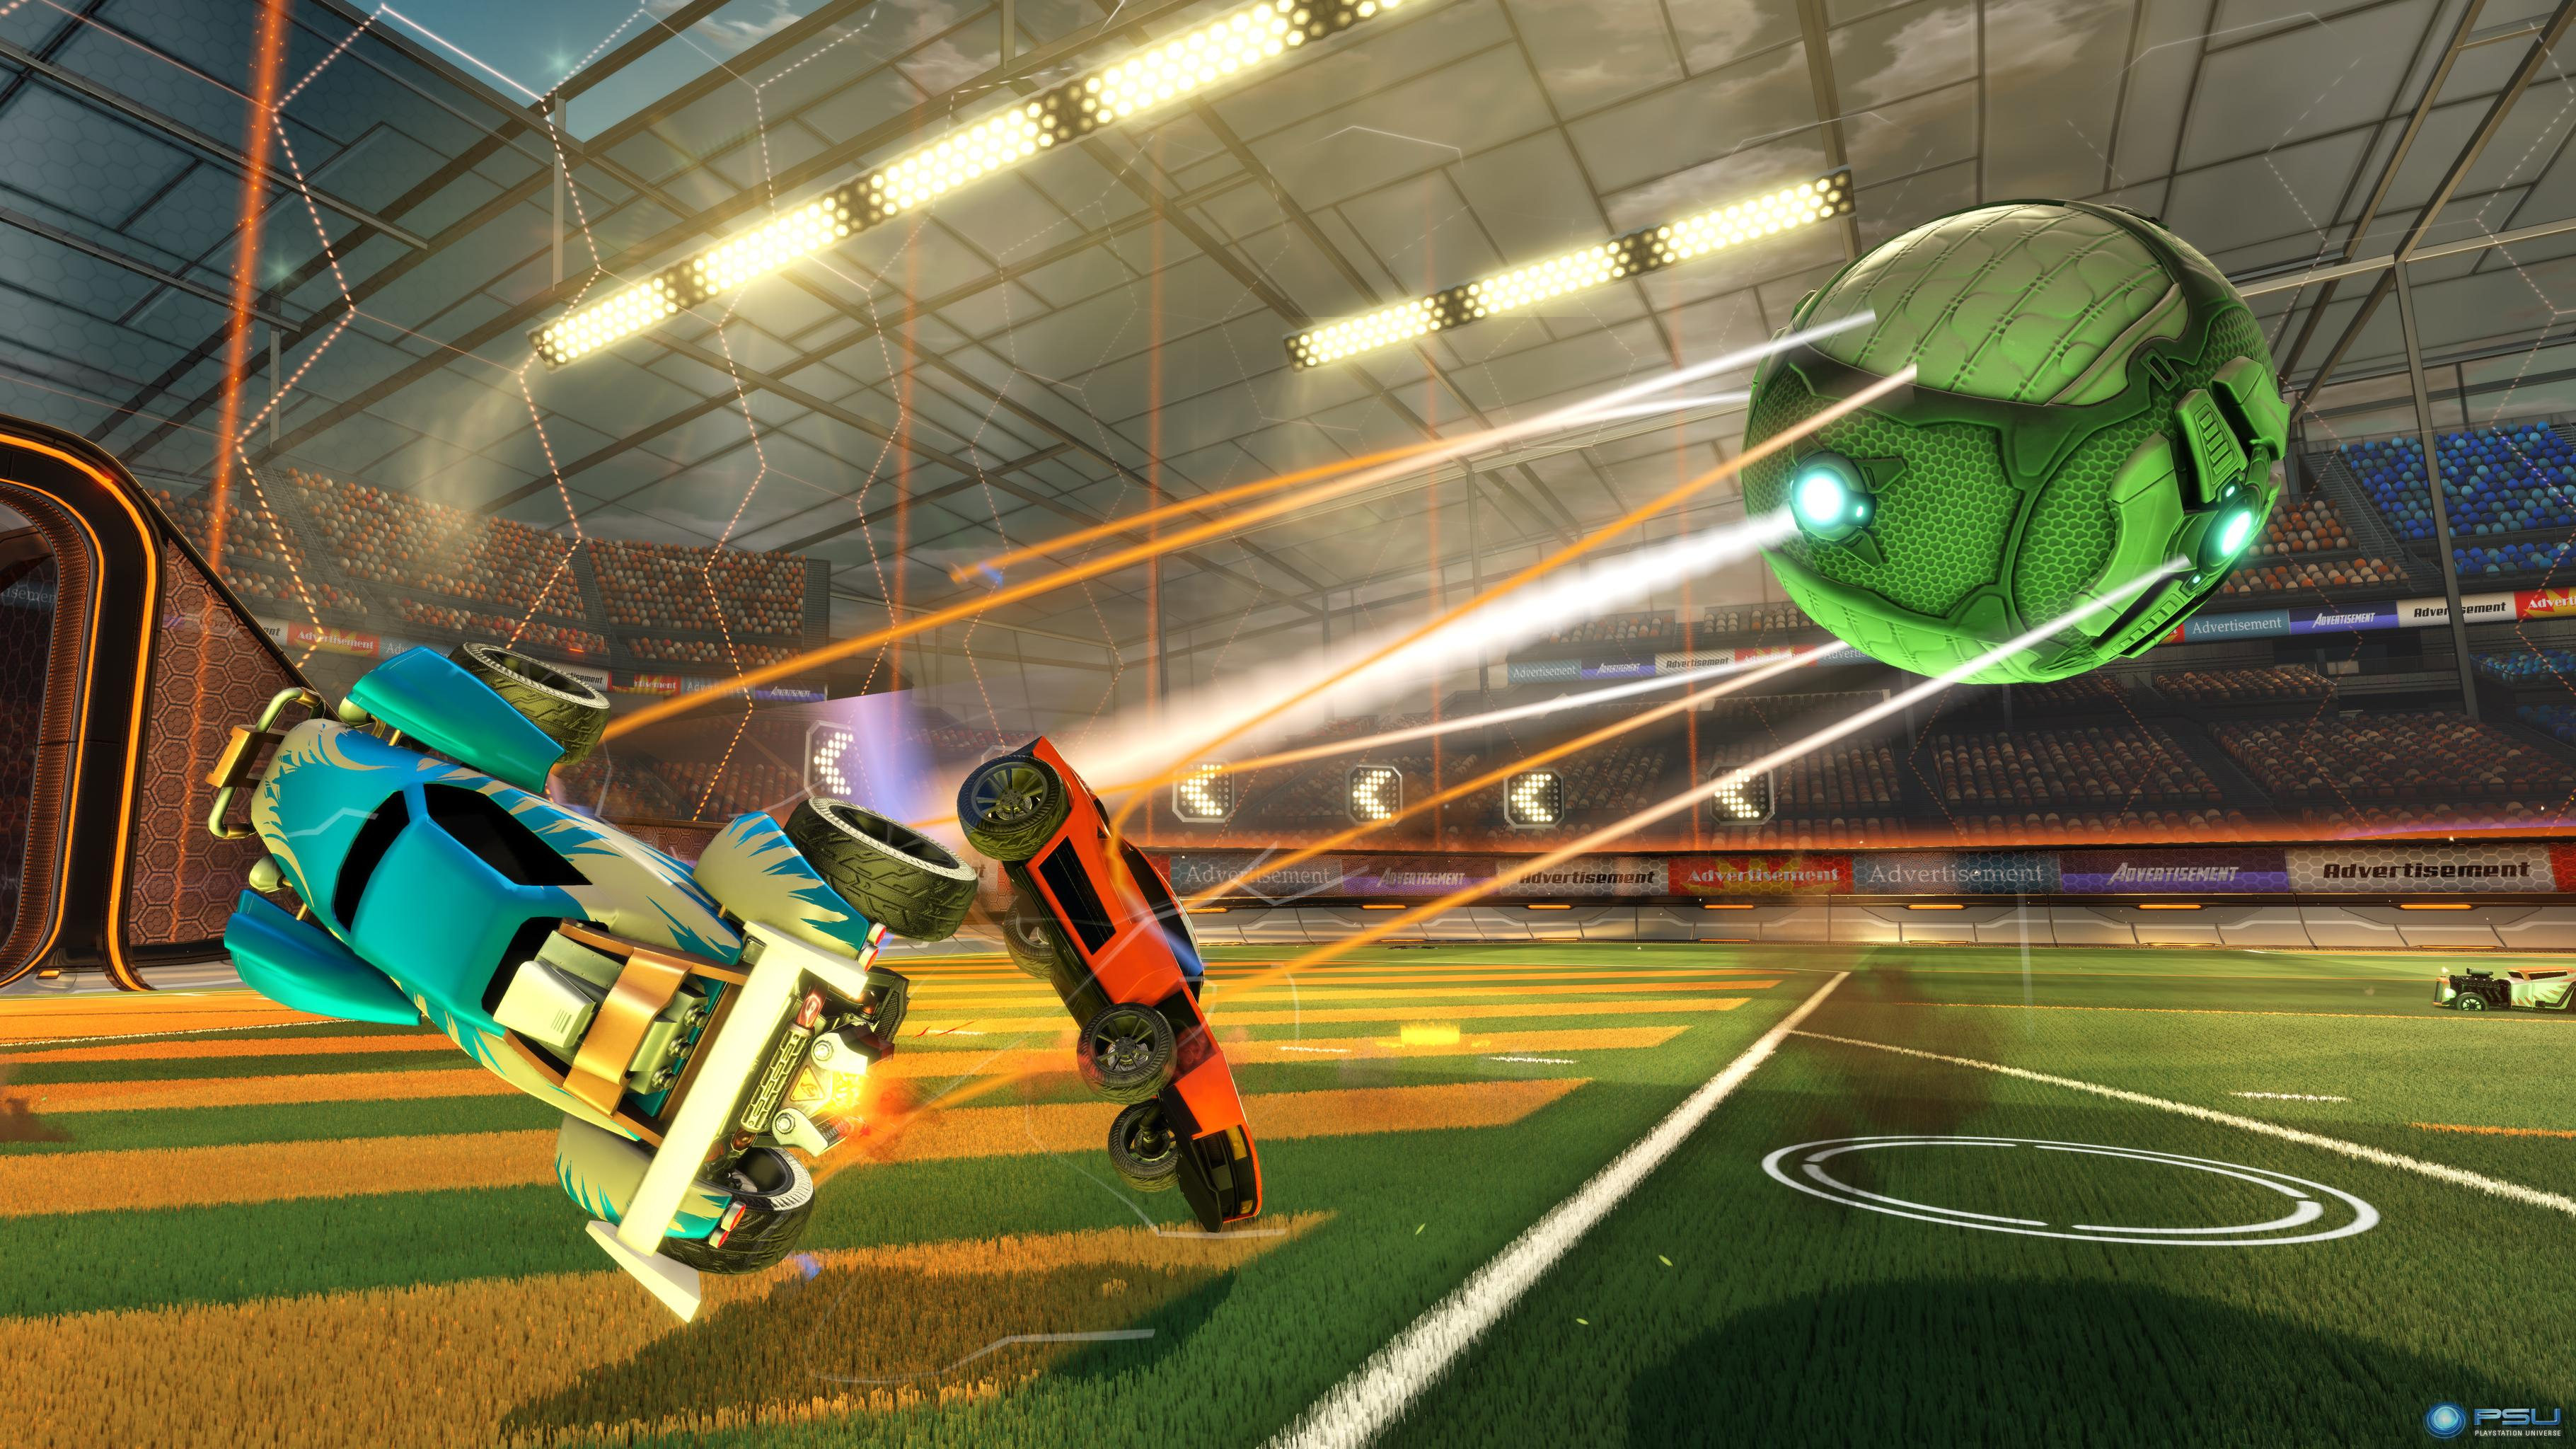 Rocket League (Nintendo Switch, PC, PS4, XBOX ONE) Rocket-league-goaaaaal